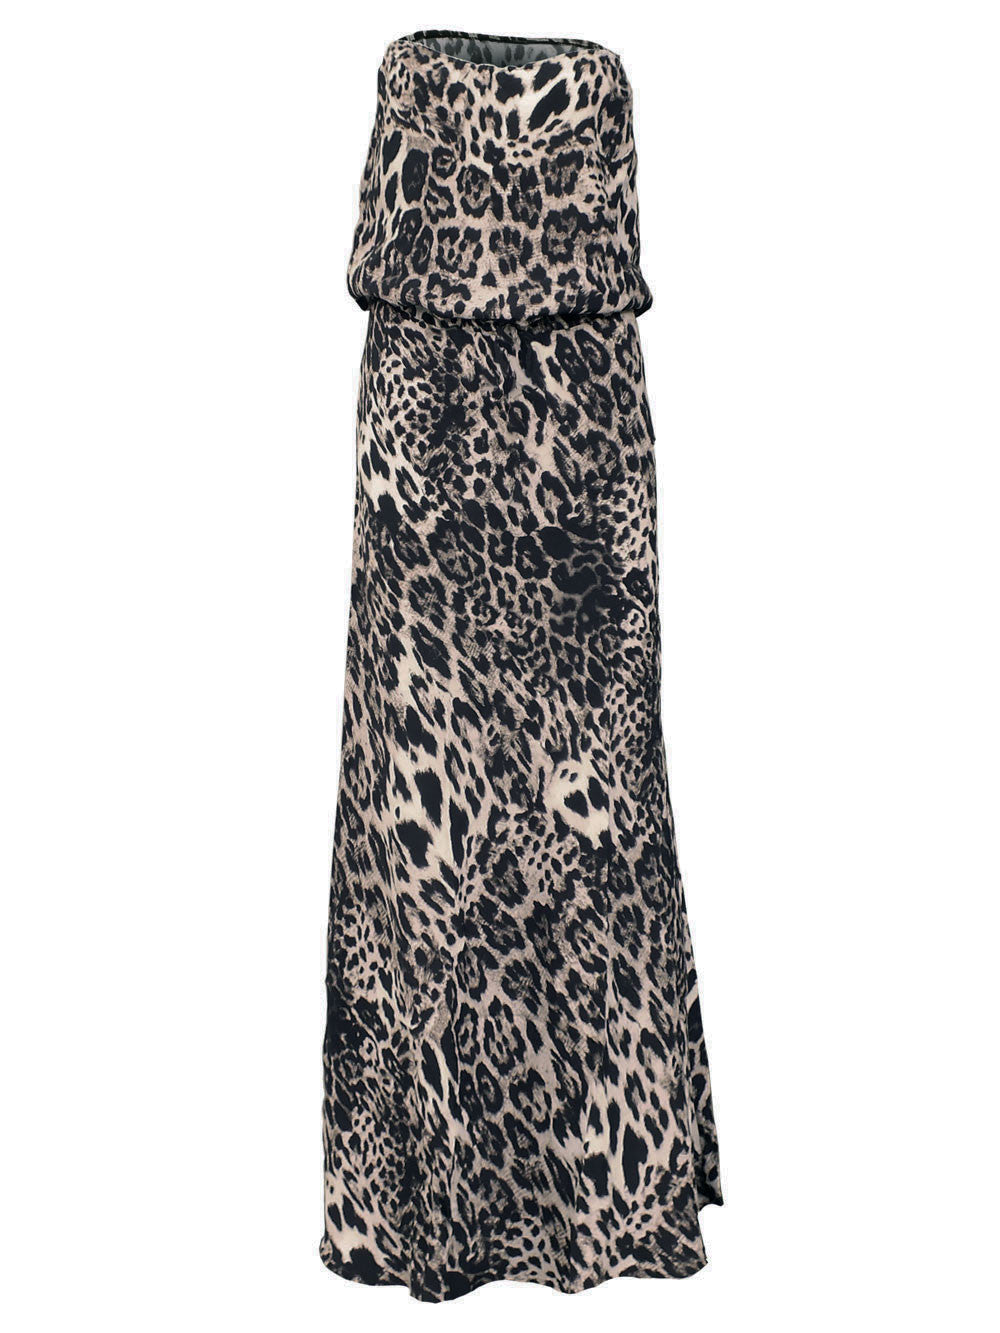 I'M A STAR LEOPARD PRINT DRESS - Little Joe Woman by Gail Elliott E-Boutique  - 4